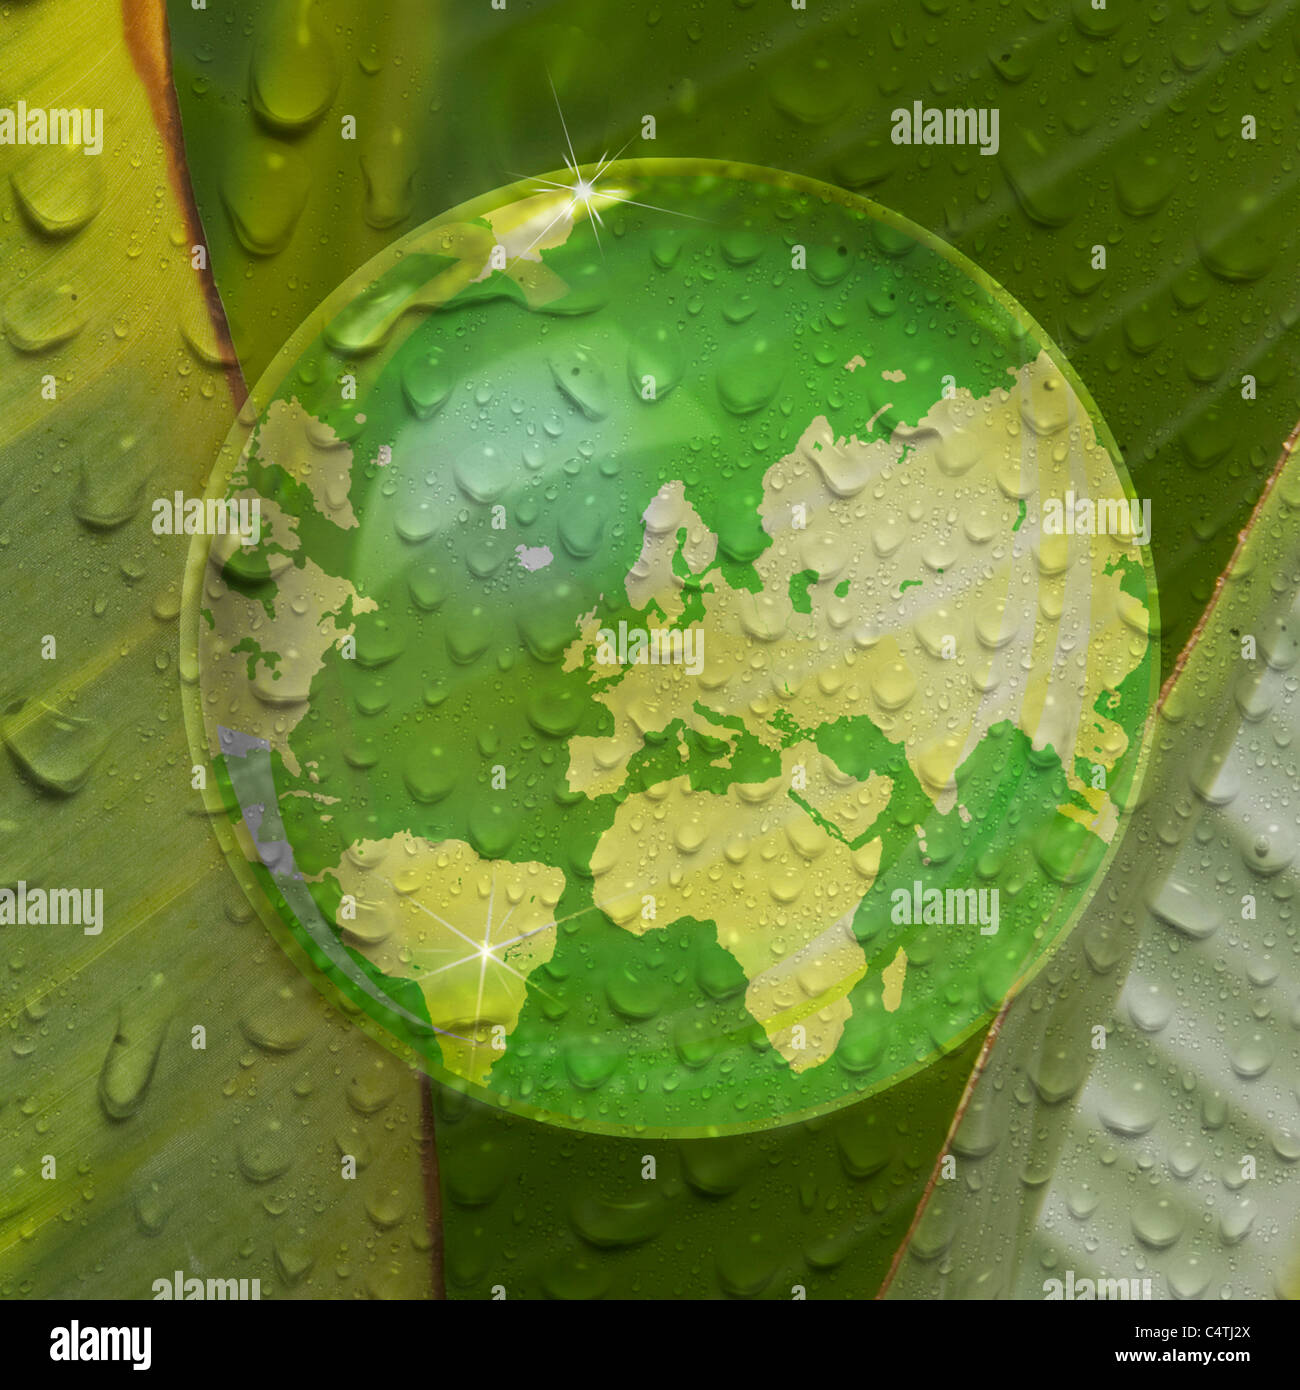 Map of earth reflected in droplet of water on plant leaf - Stock Image